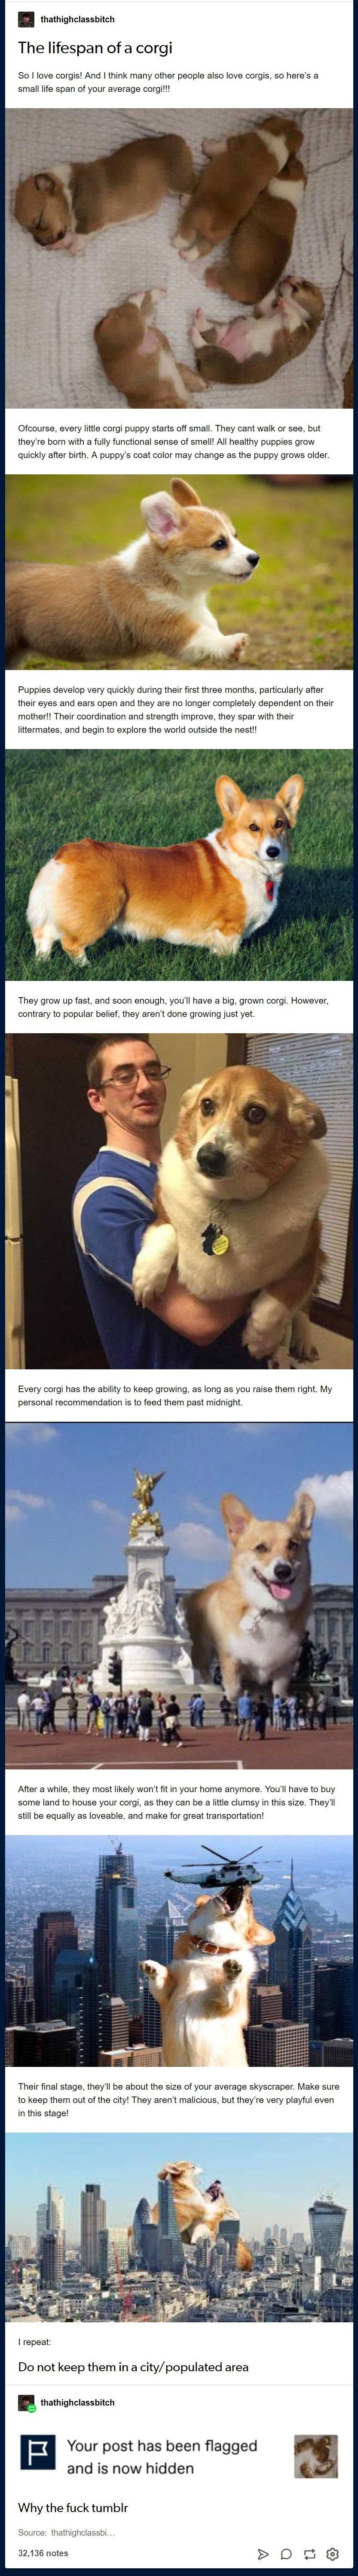 26 Tremendous Tumblr Posts That Are Shining On Internet Animals